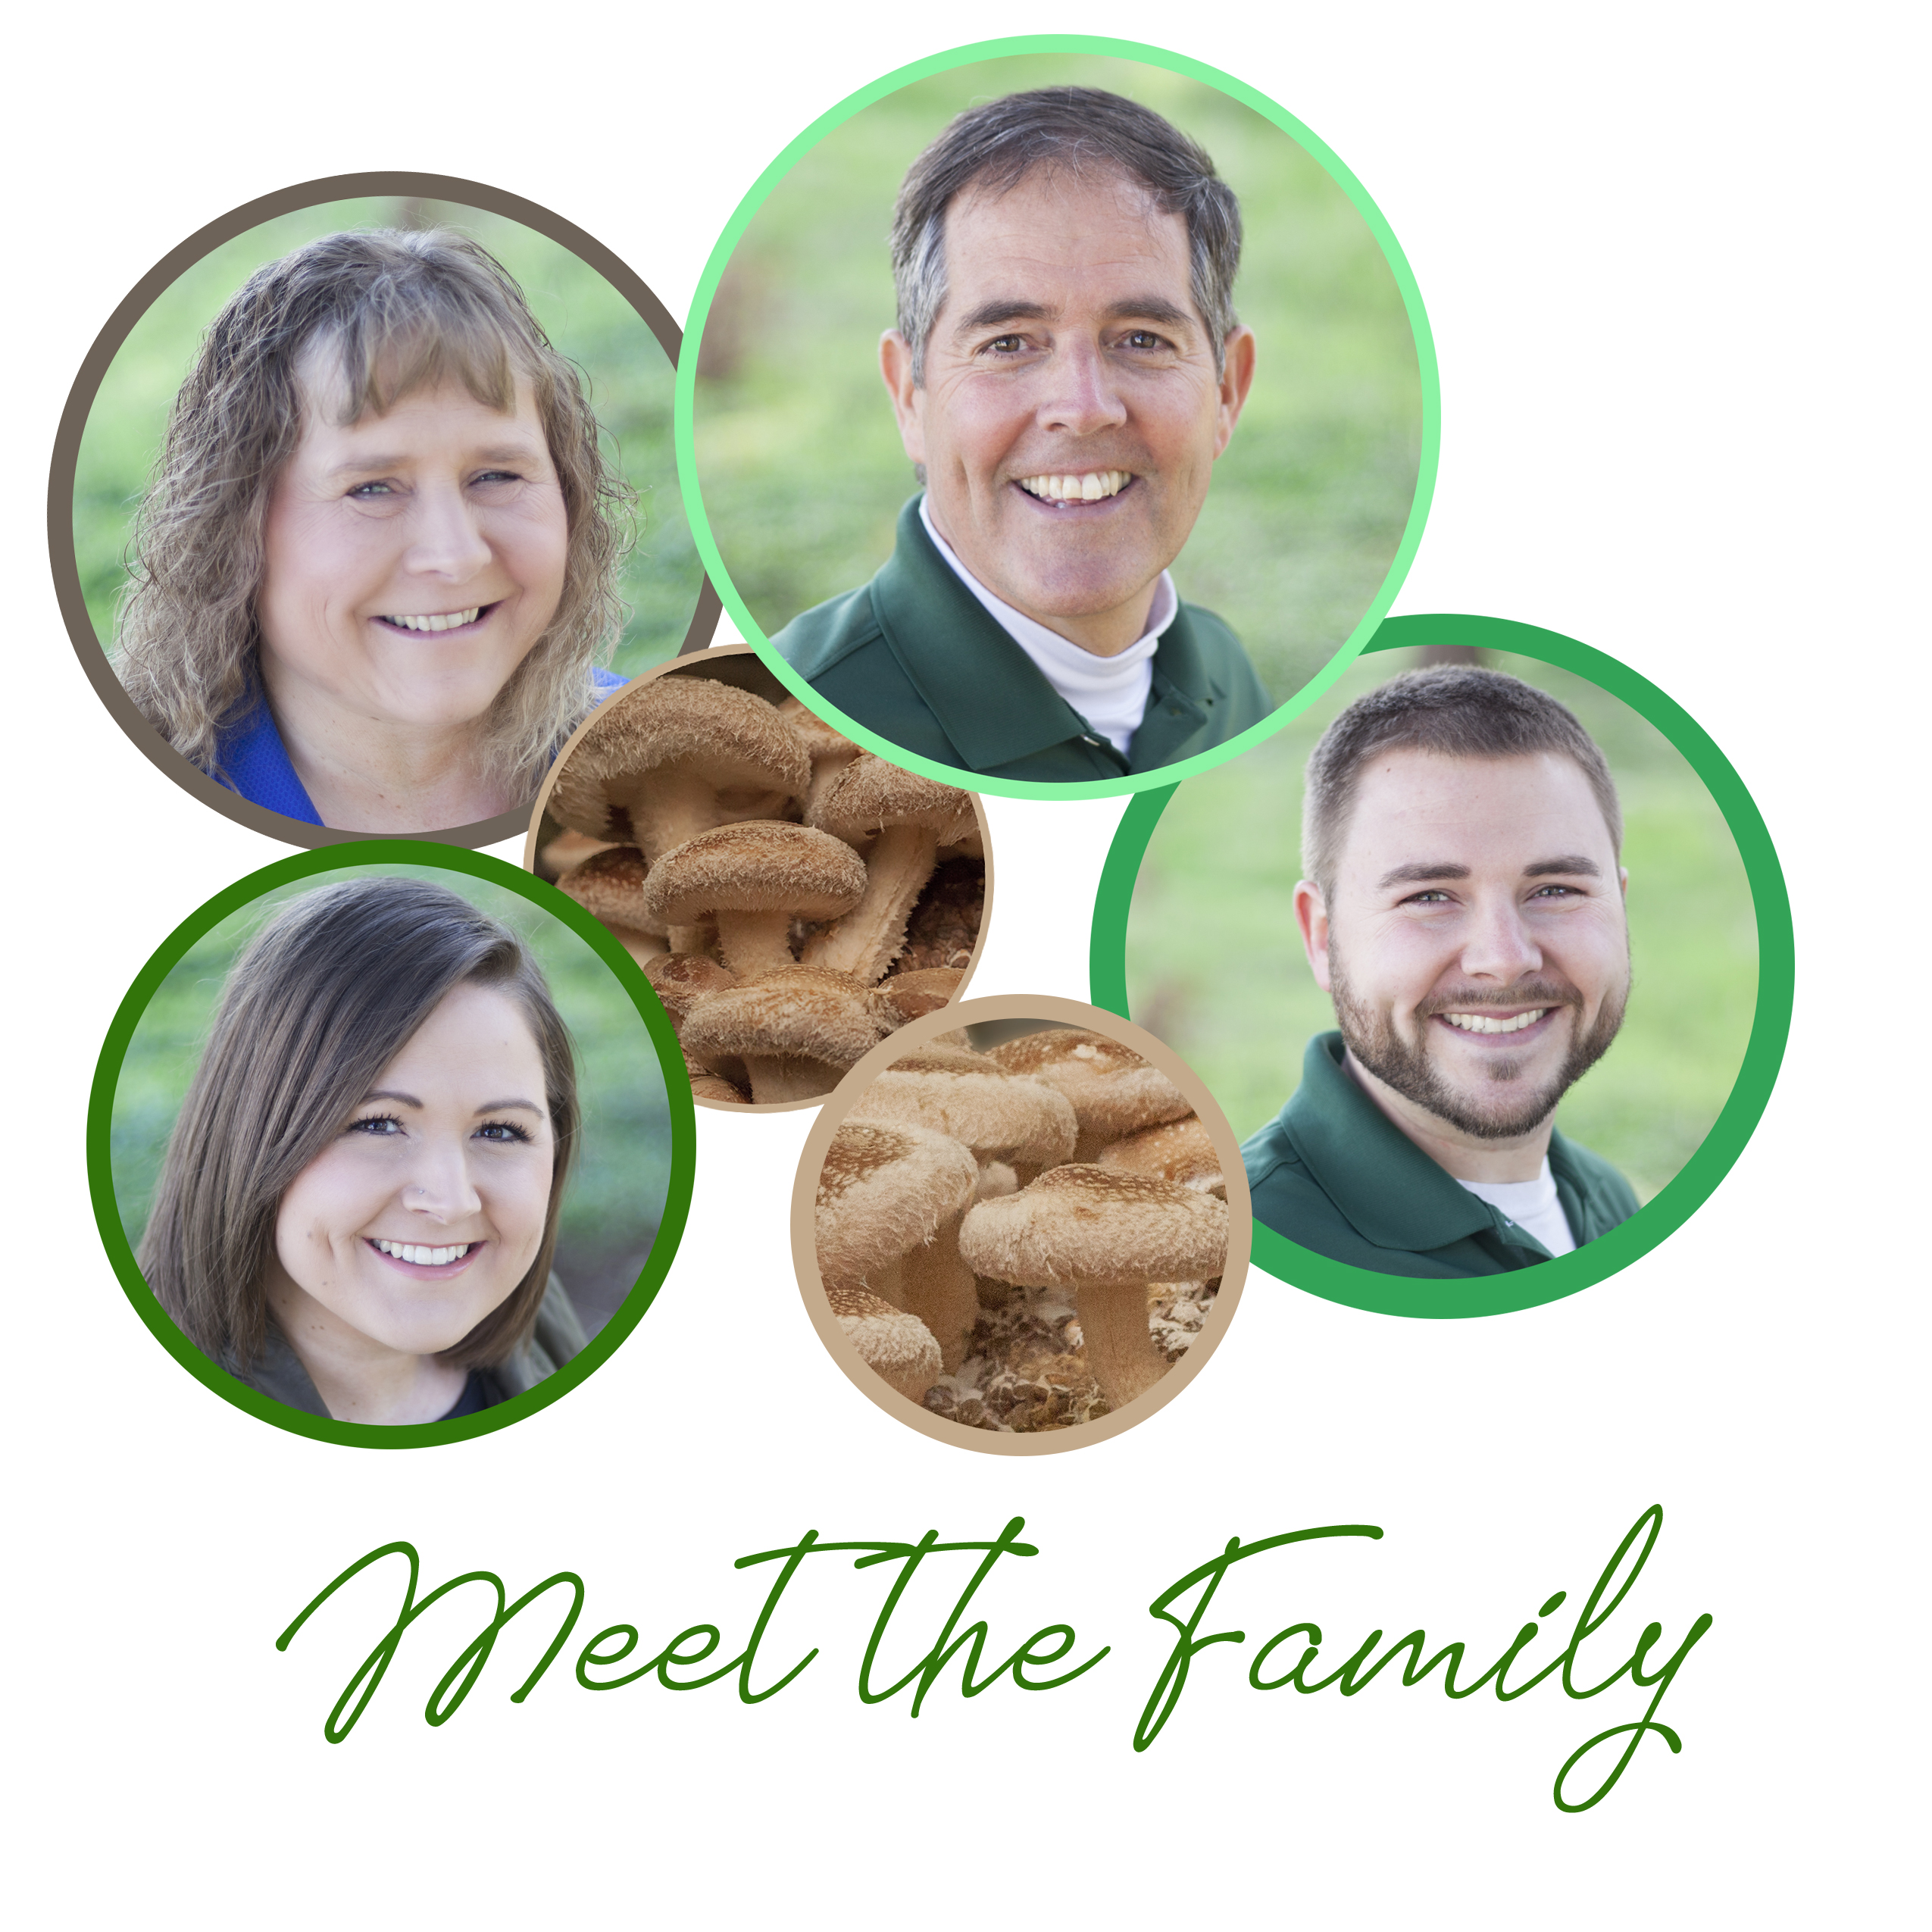 meet the family shiitake mushrooms certified organic shiitake mushrooms oregon food safety vegan